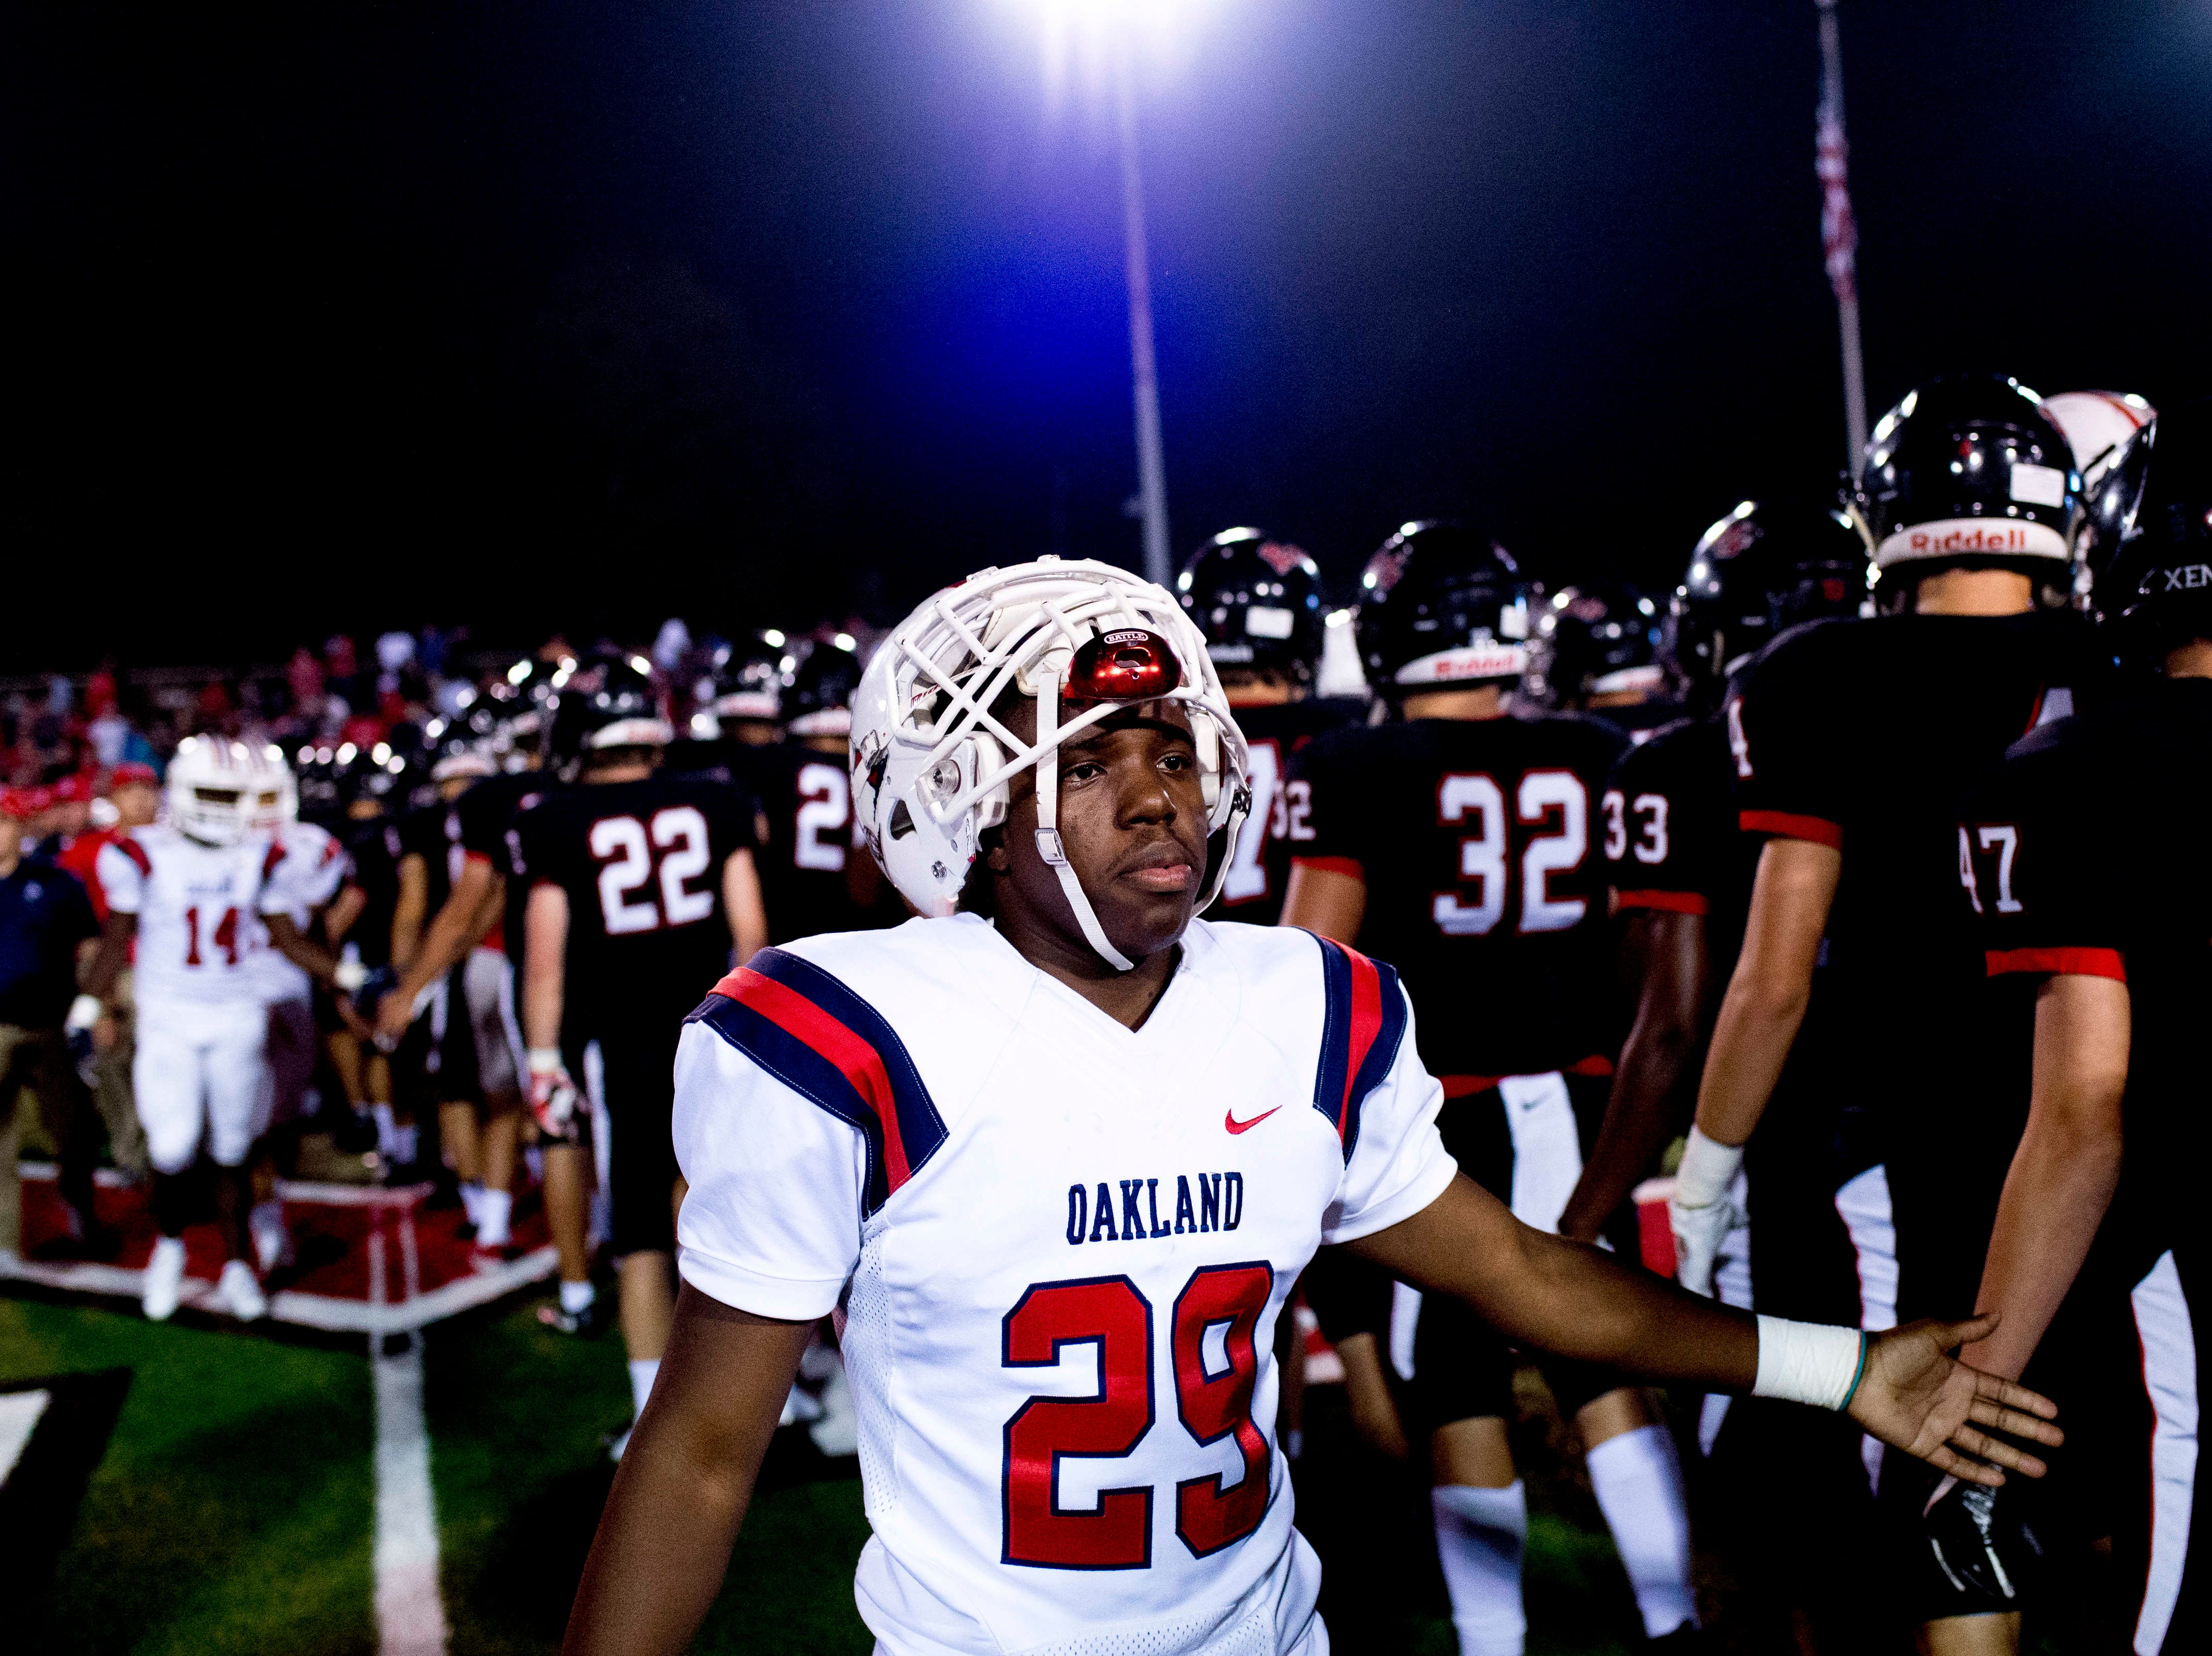 Oakland's Antonio Lee (29) congratulates Maryville after Oakland's loss during a football game between Maryville and Oakland at Maryville High School in Maryville, Tennessee on Friday, August 24, 2018.